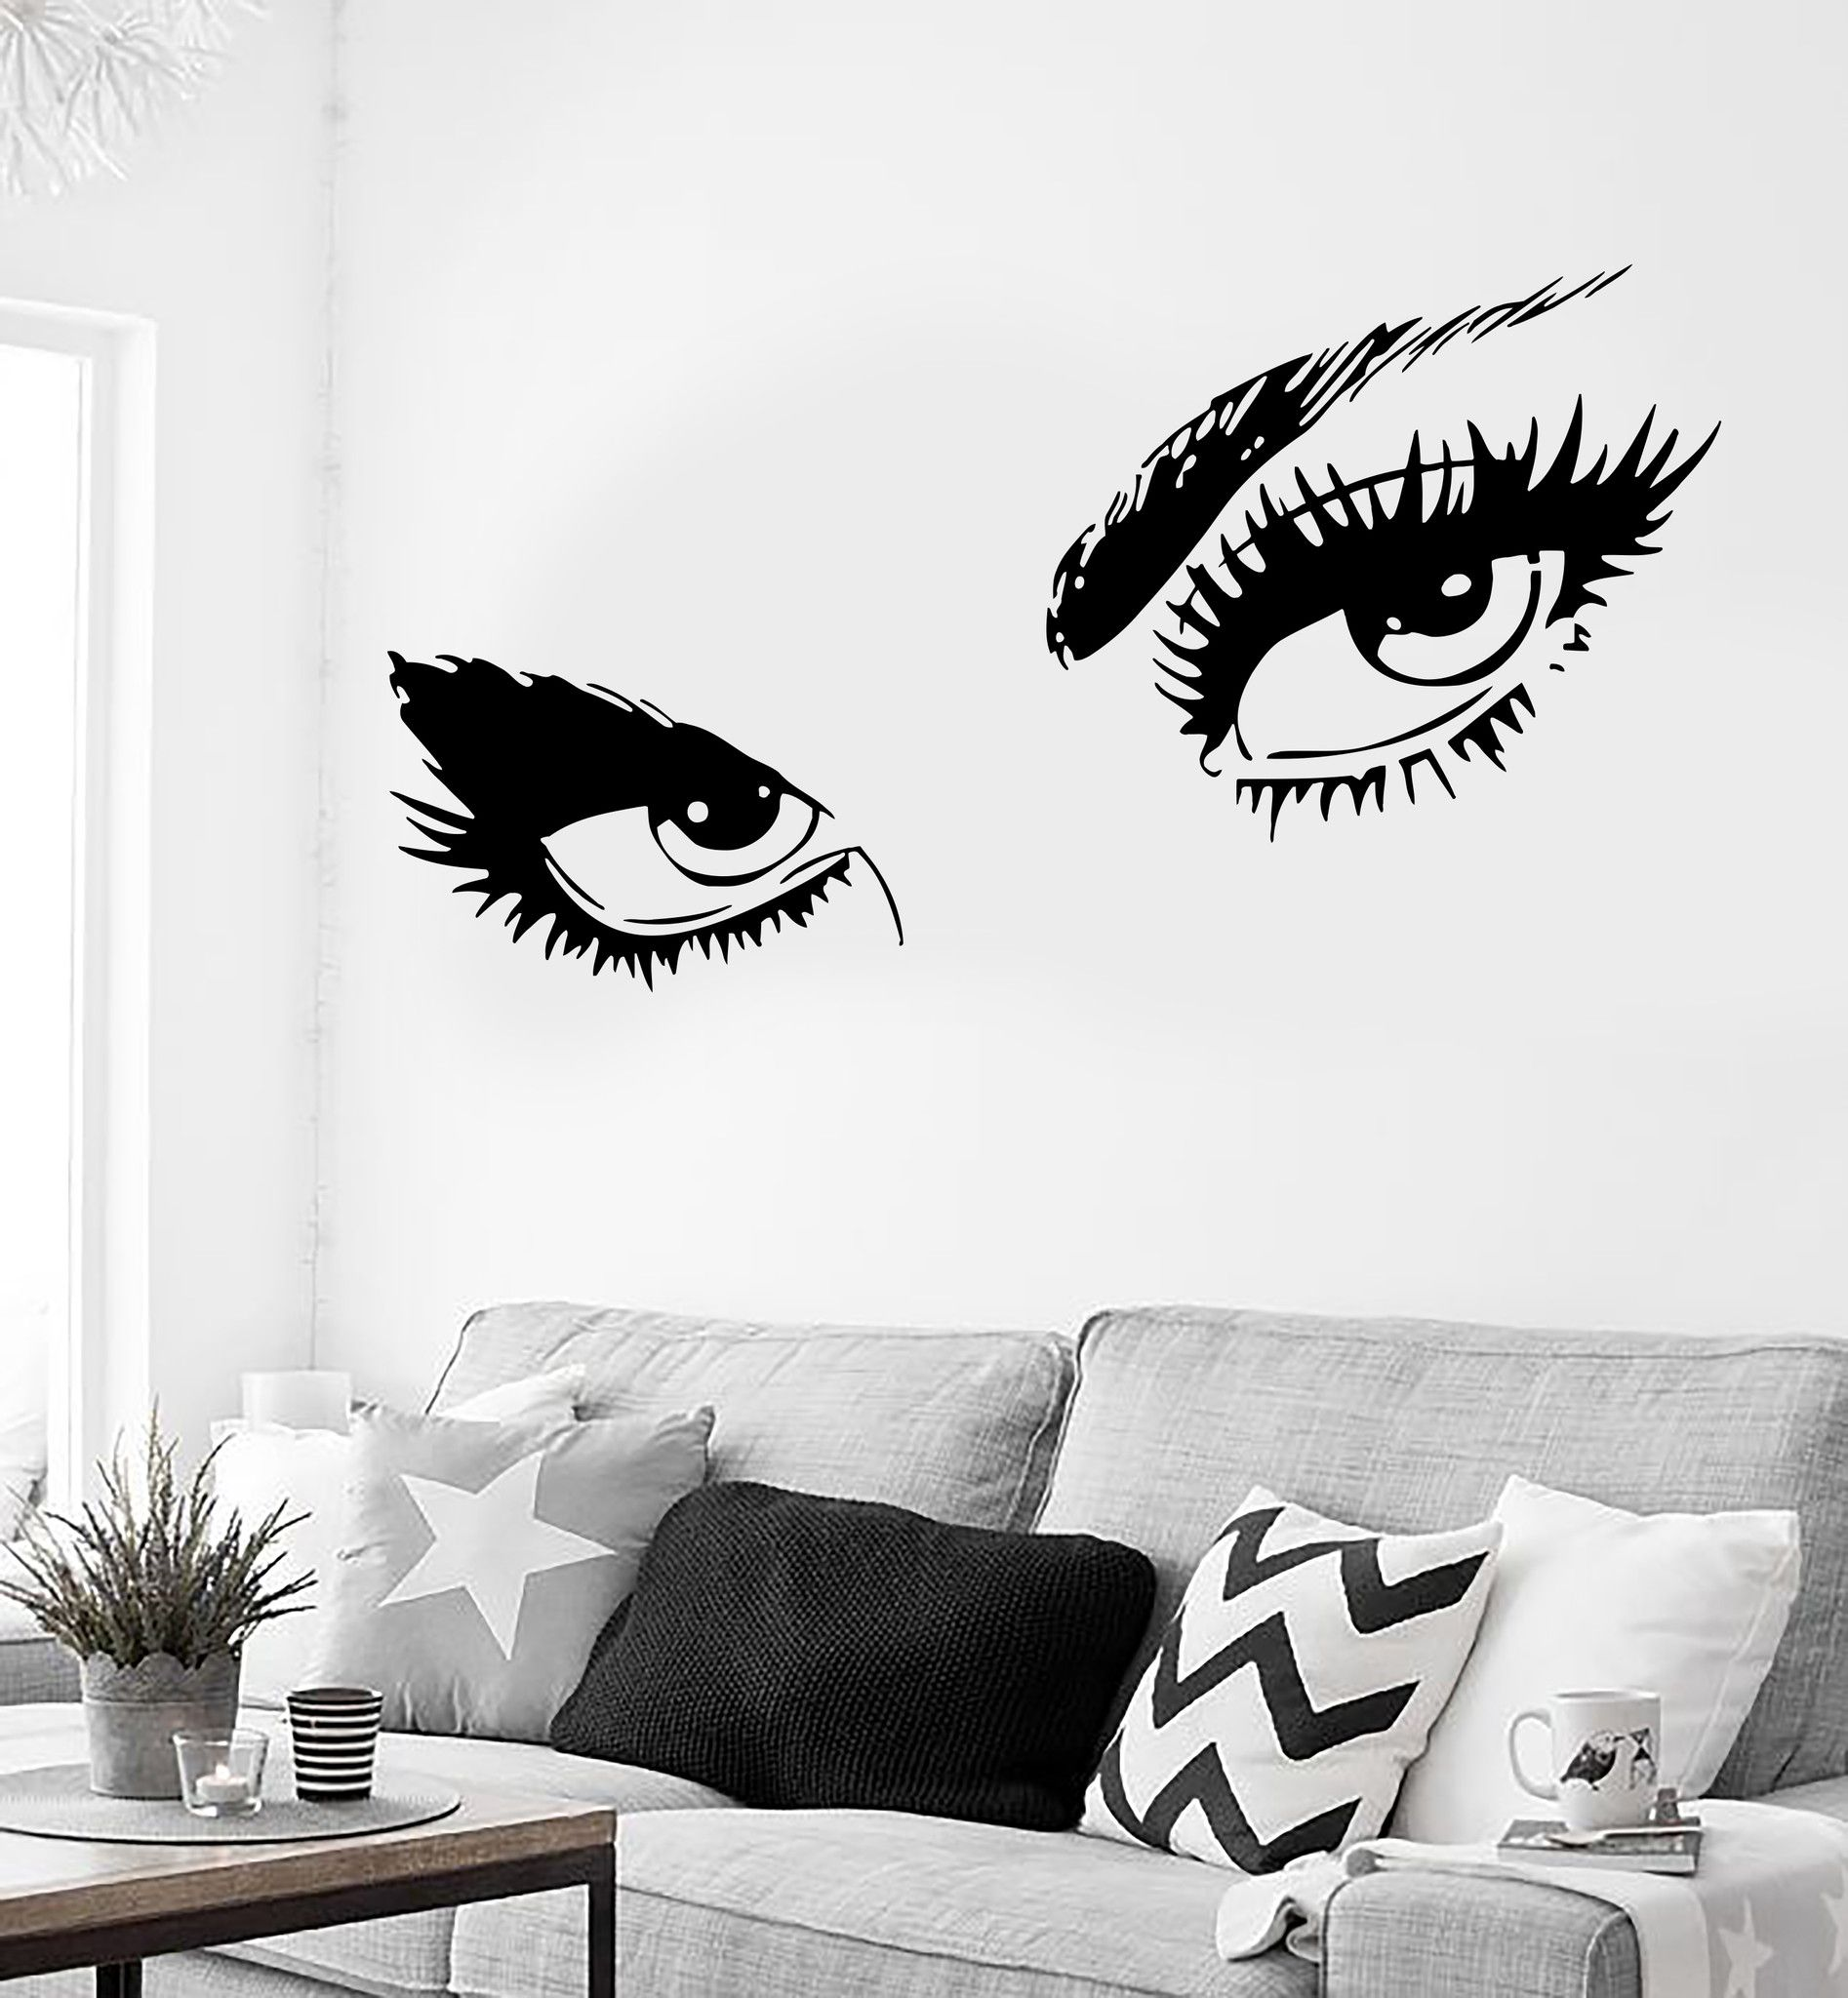 Wall Sticker Sexy Hot Eyes Girl Teen Woman Decal For Living Room